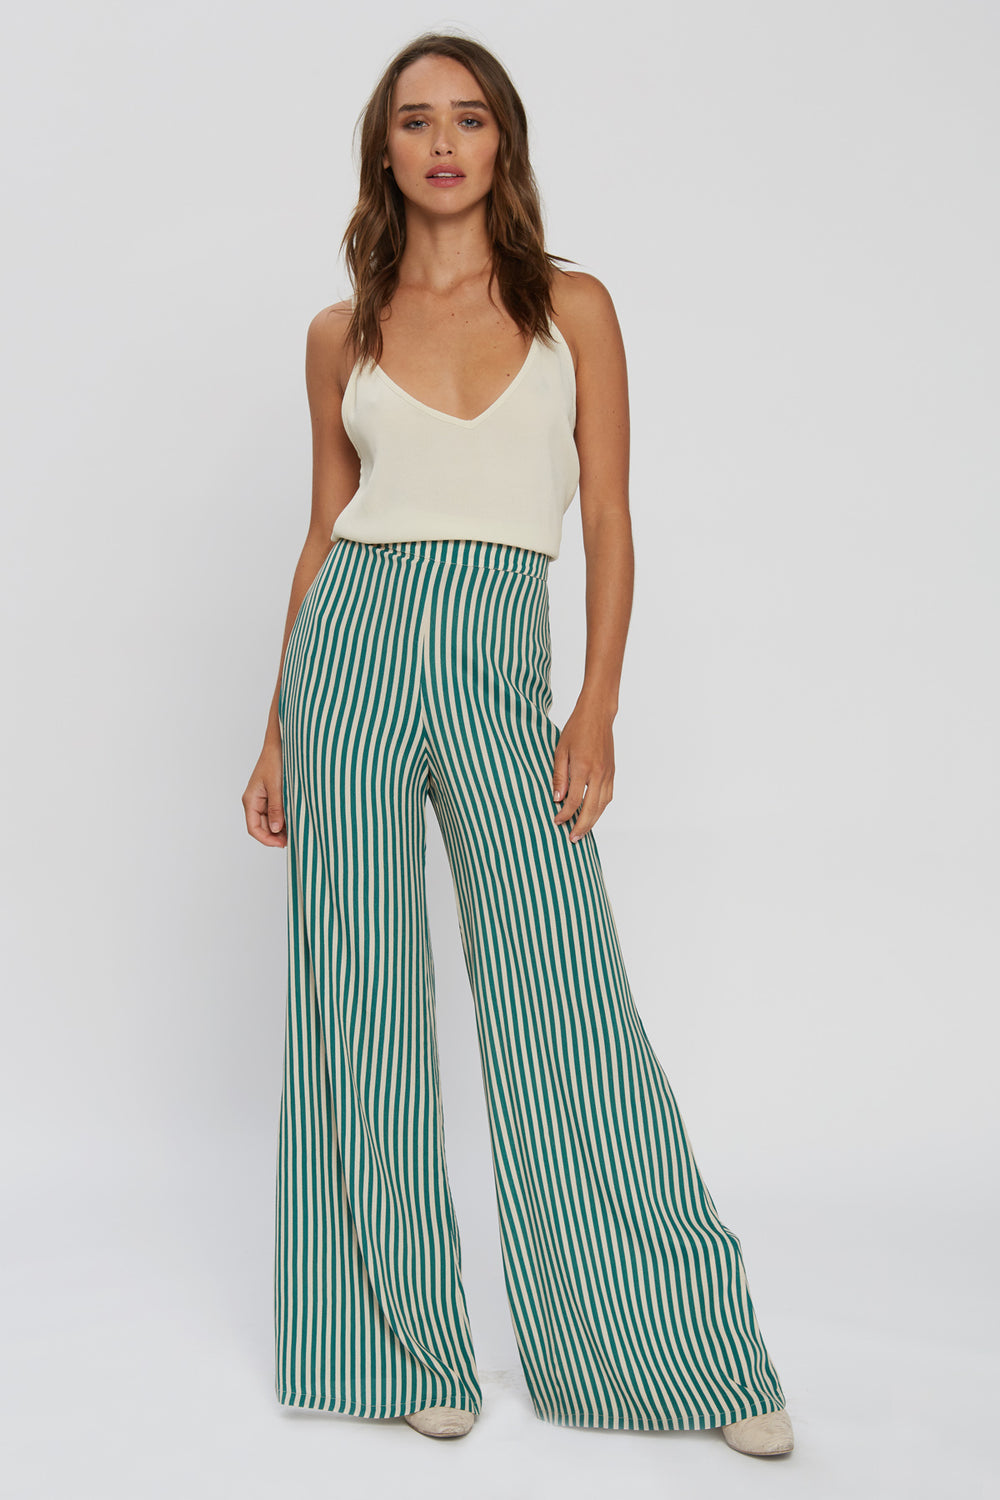 Ride or Die Pant - Cabanna Girl